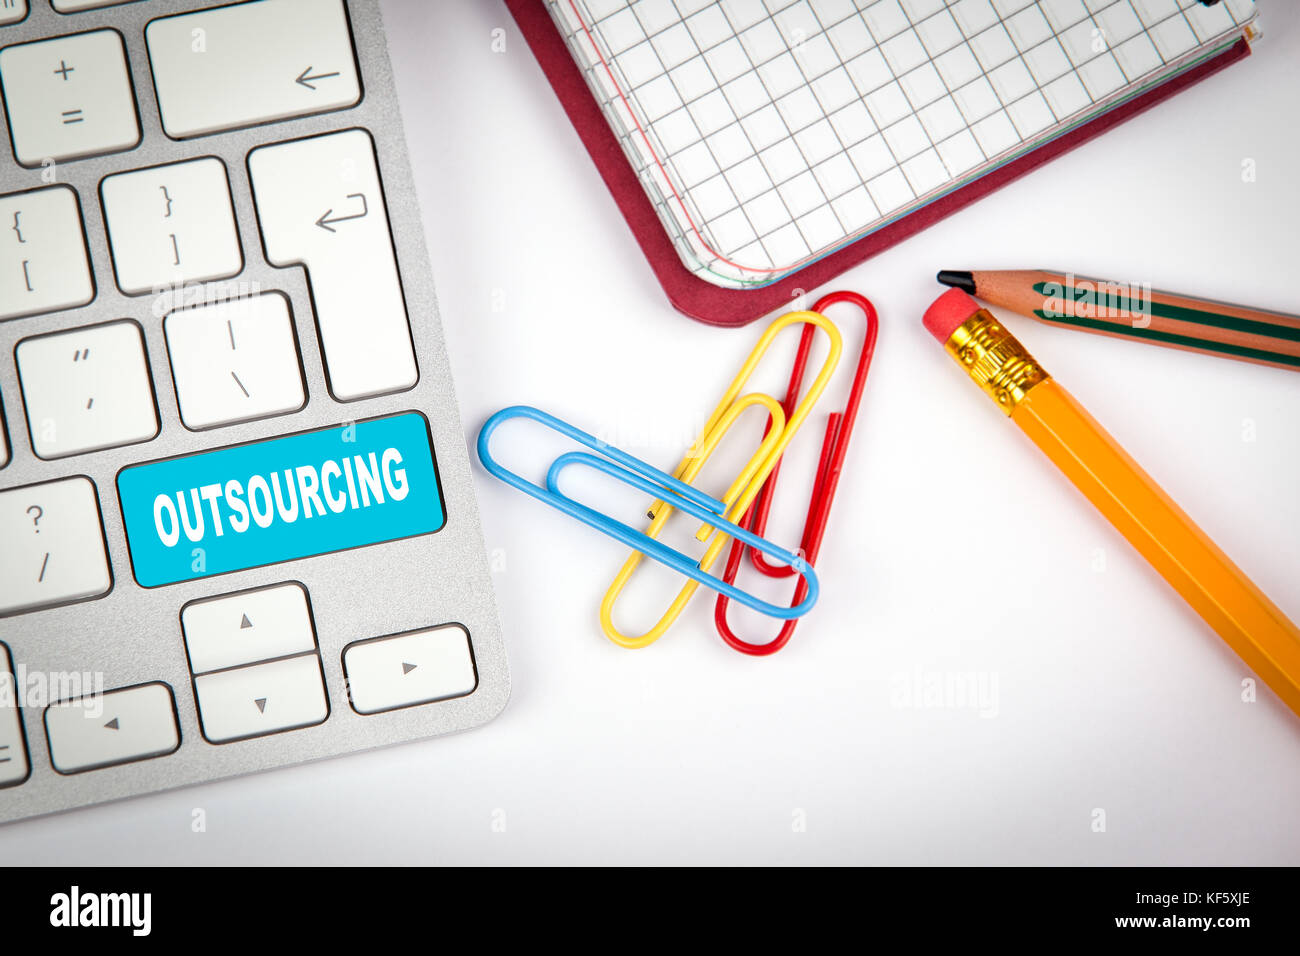 Outsourcing concept. Computer keyboard on a white office desk with various items - Stock Image